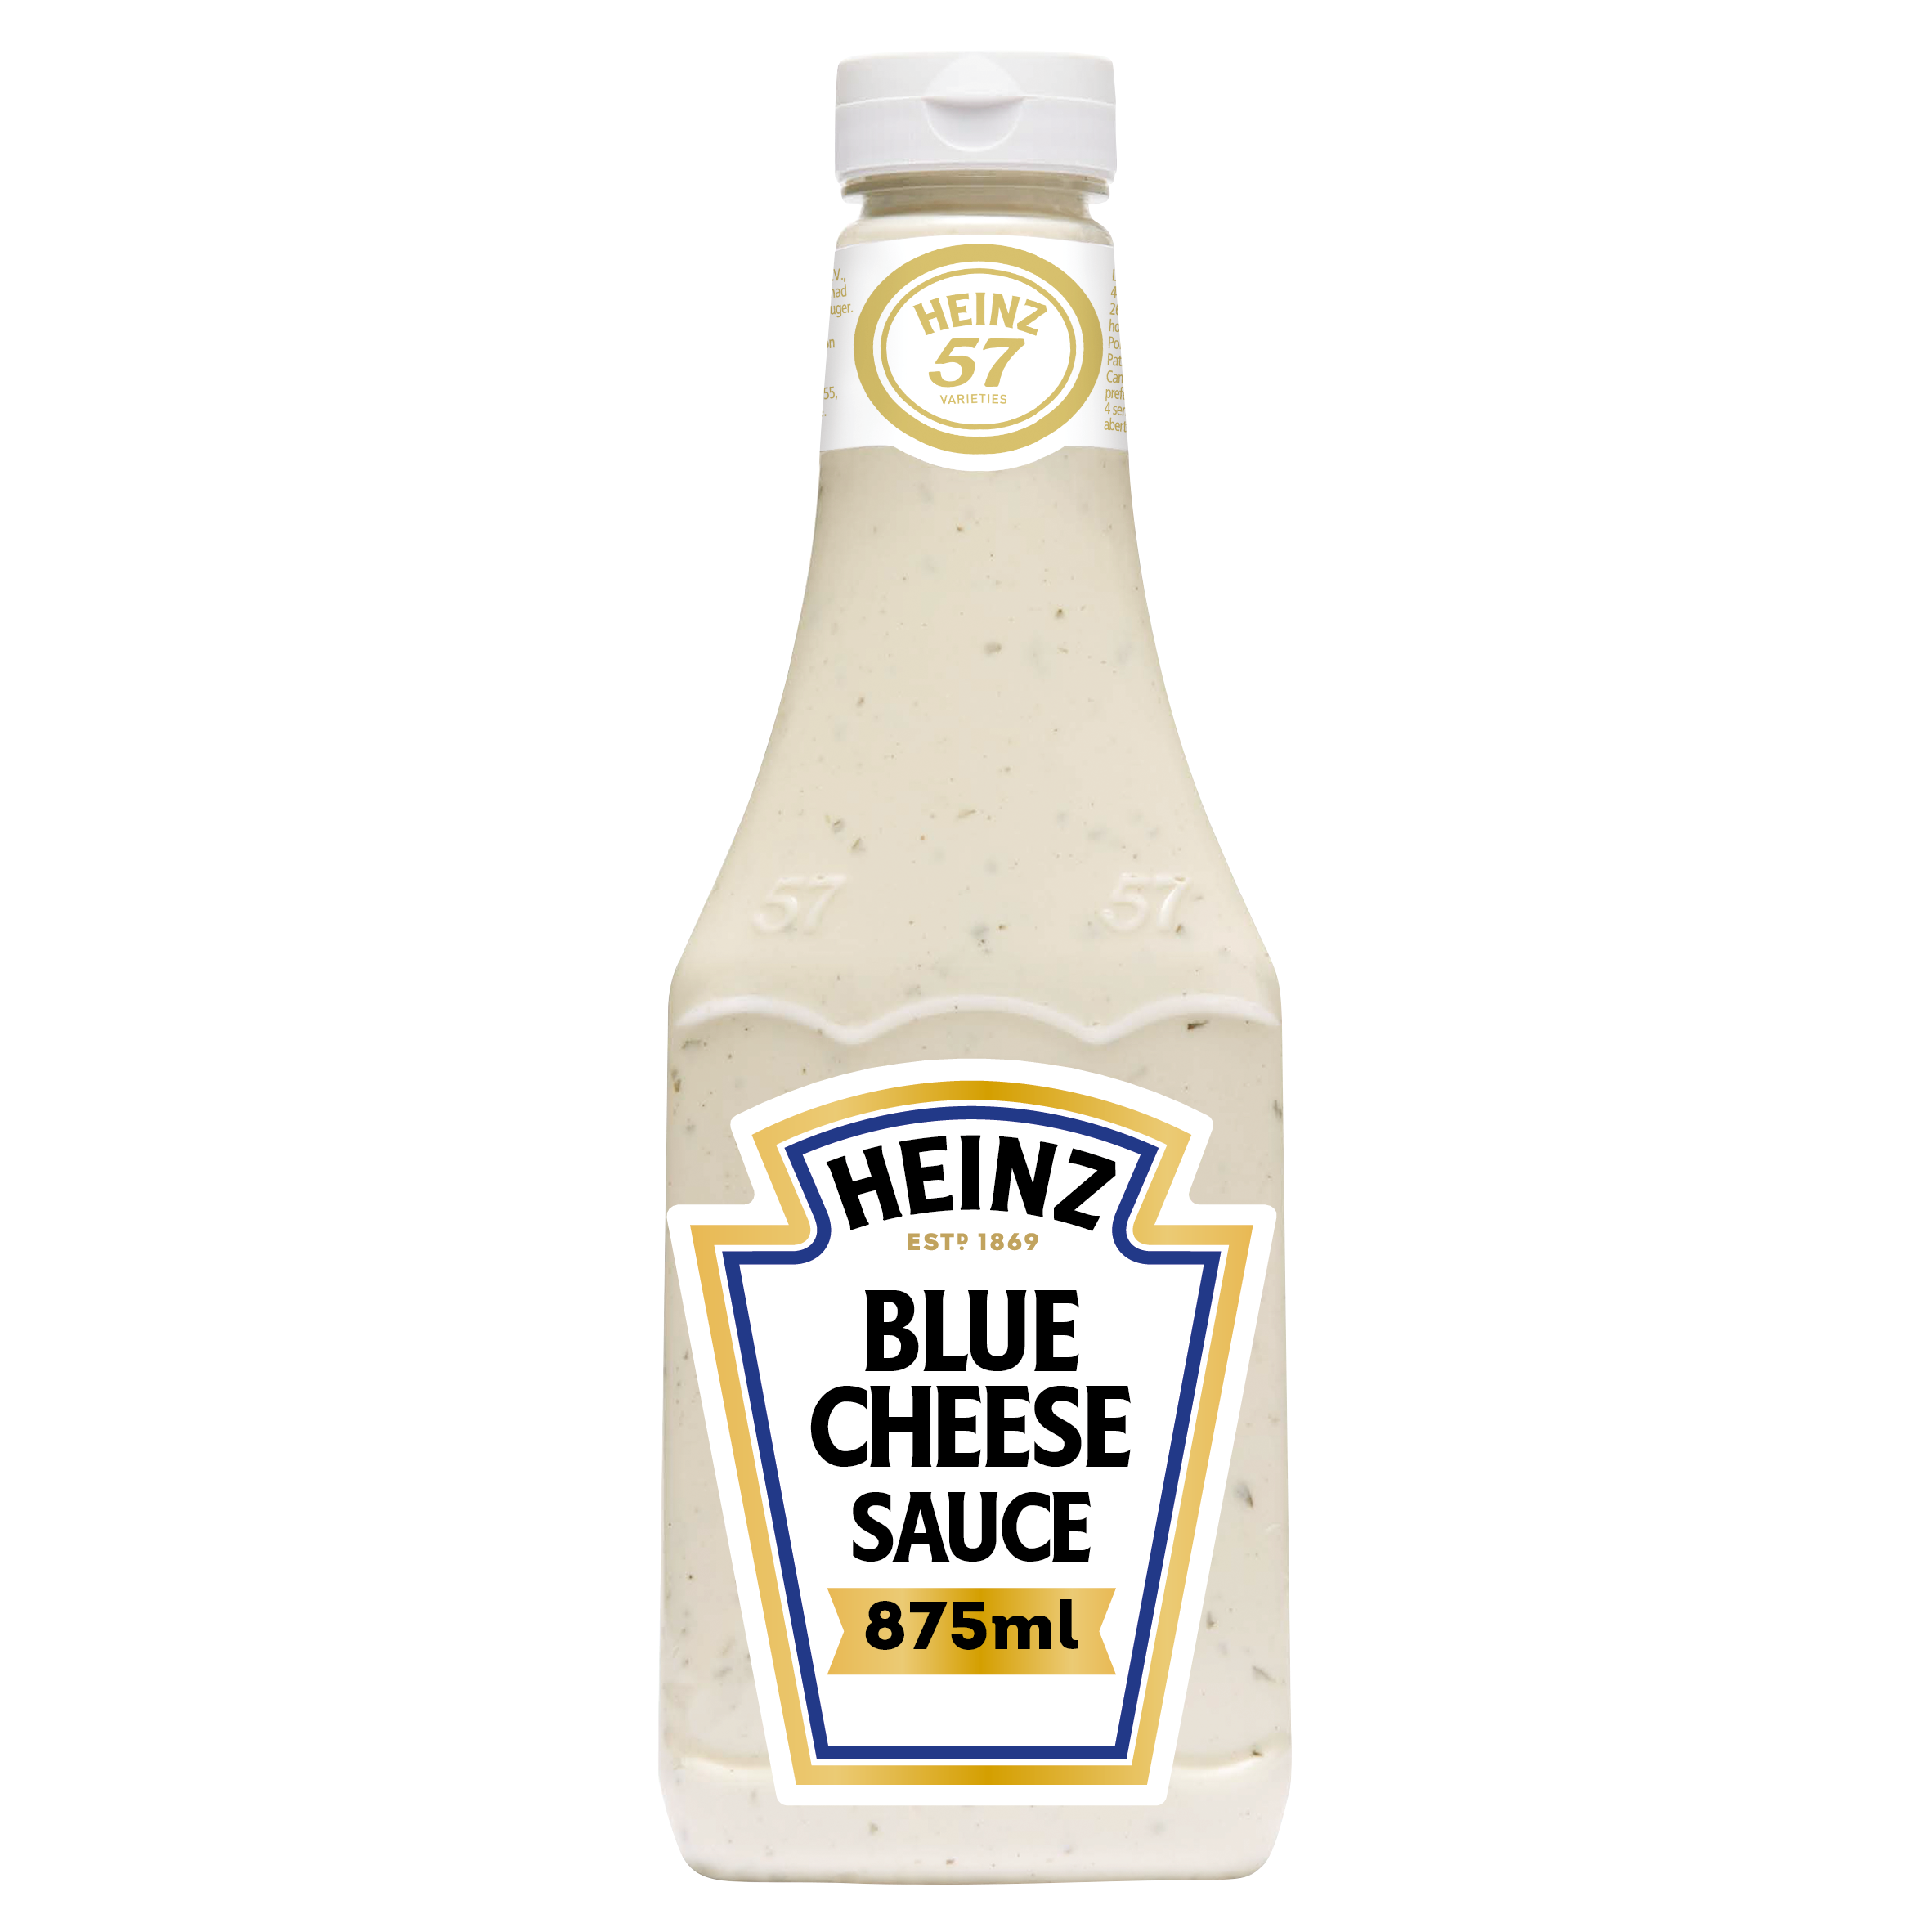 Heinz Blue Cheese 875ml Bottom Up image